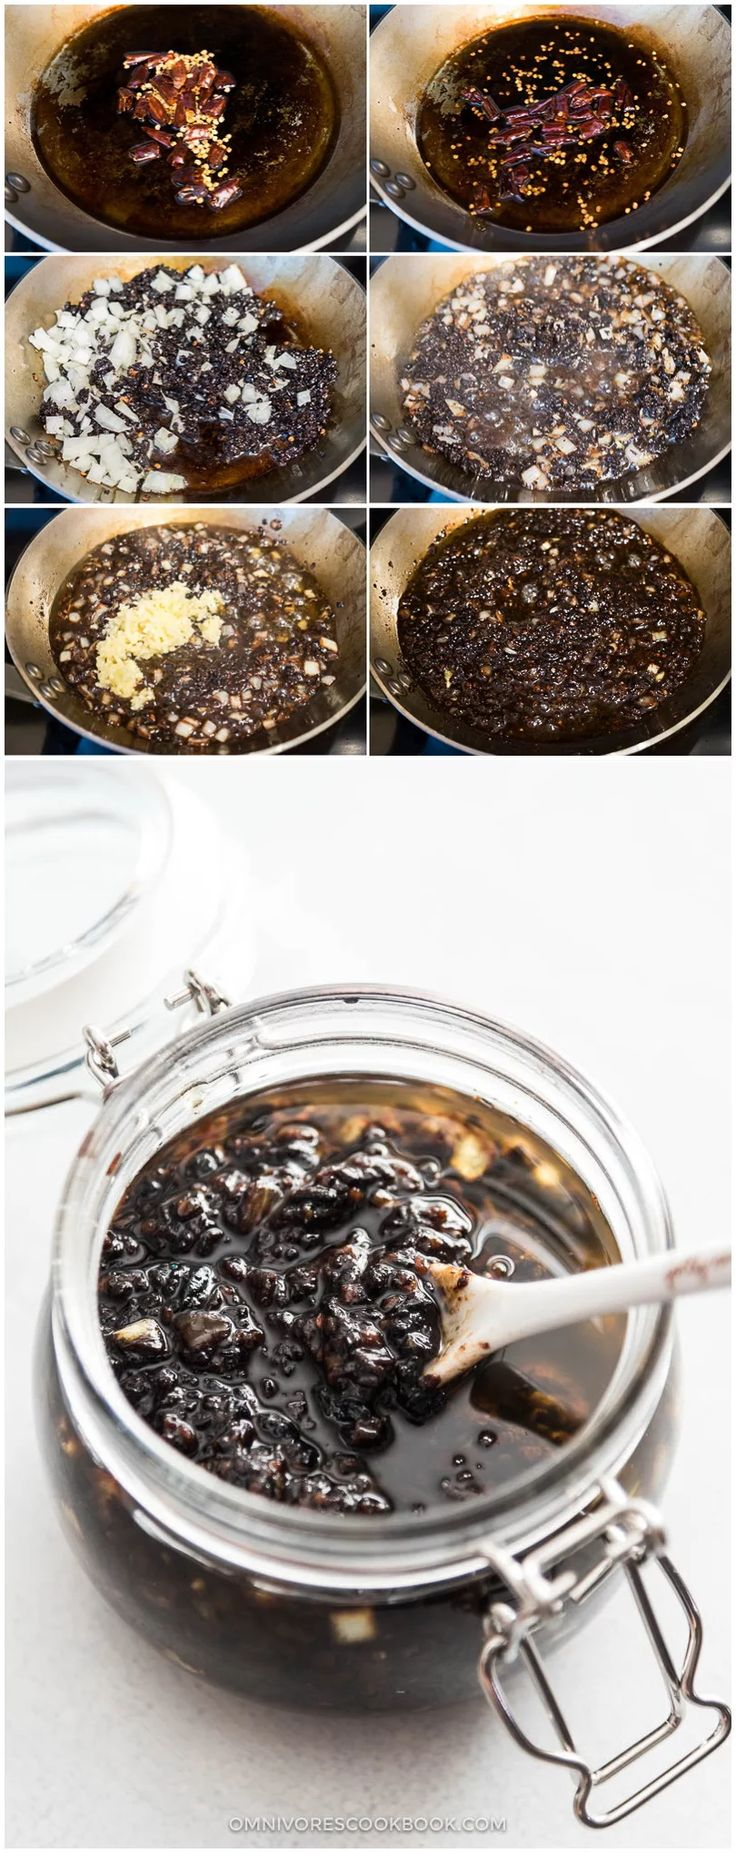 INGREDIENTS: 1 cup fermented black beans 1/3 cup vegetable oil 1/4 white onion, minced (Optional) 4 to 6 dried chili peppers, torn to small pieces...